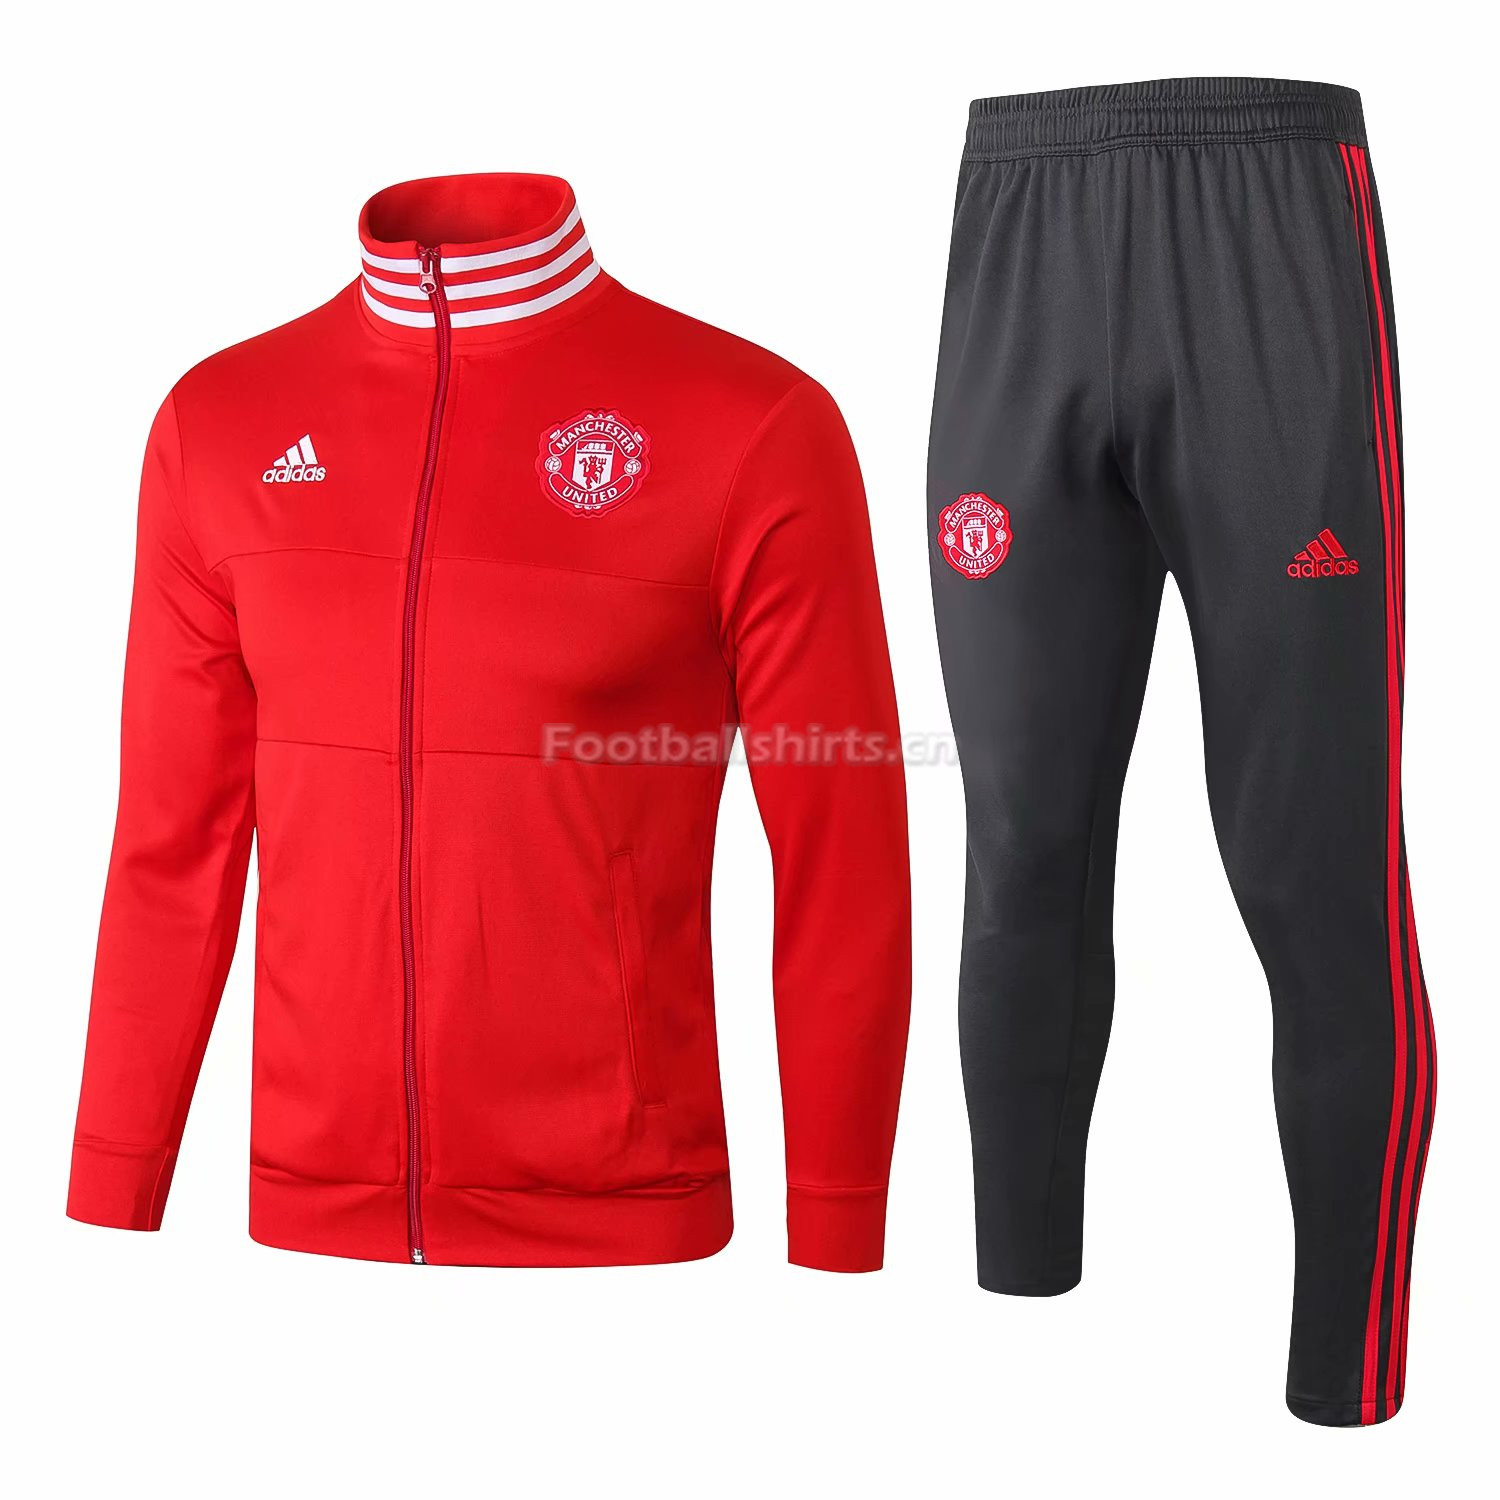 Manchester United Red Training Suit (Jacket+Trouser) 2018/19